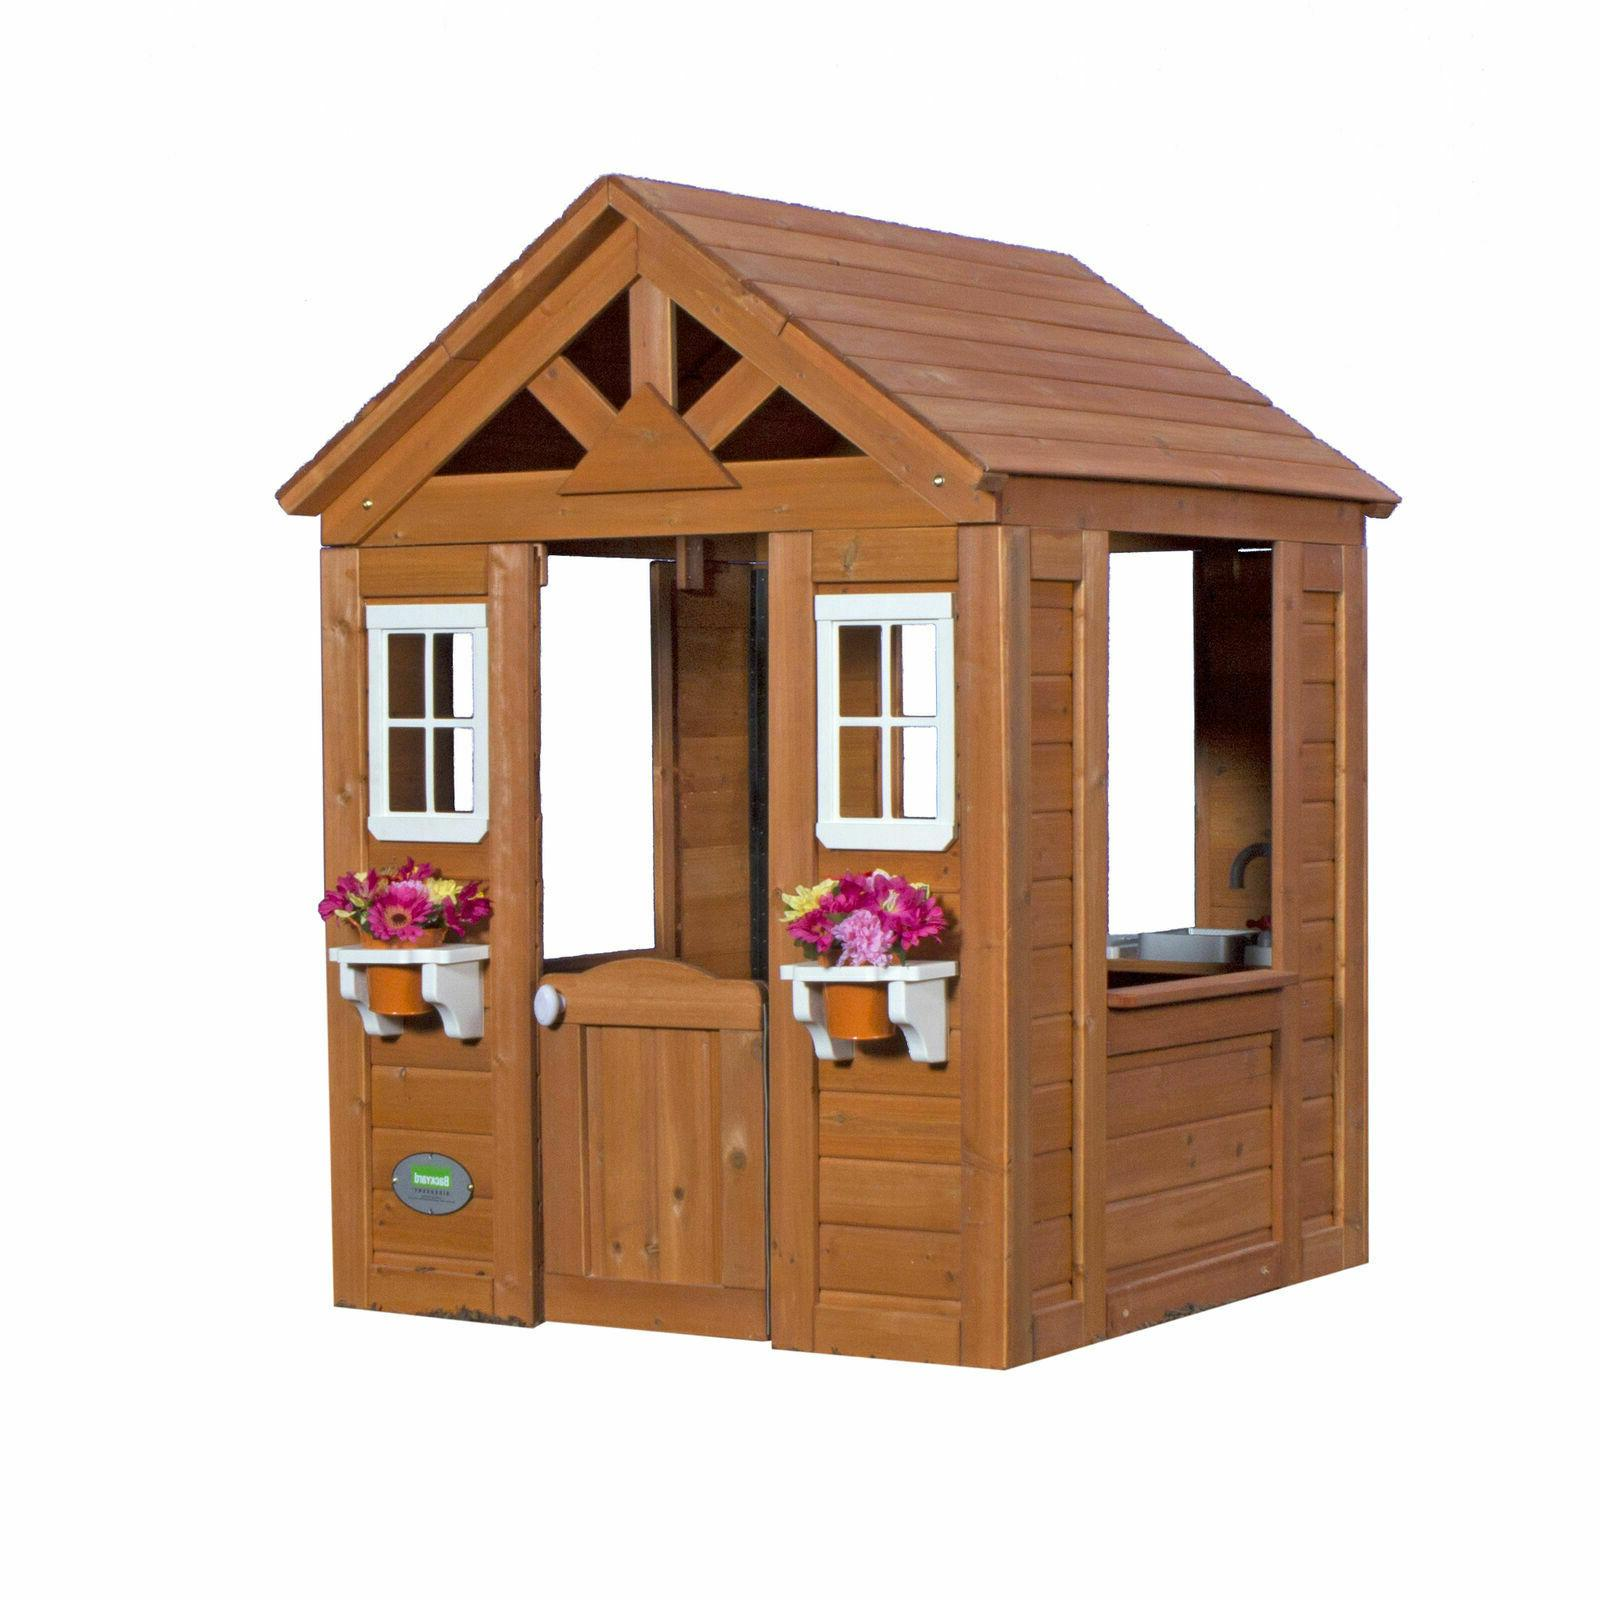 Backyard Playhouse Wooden Wood Outdoor House Playset Cottage